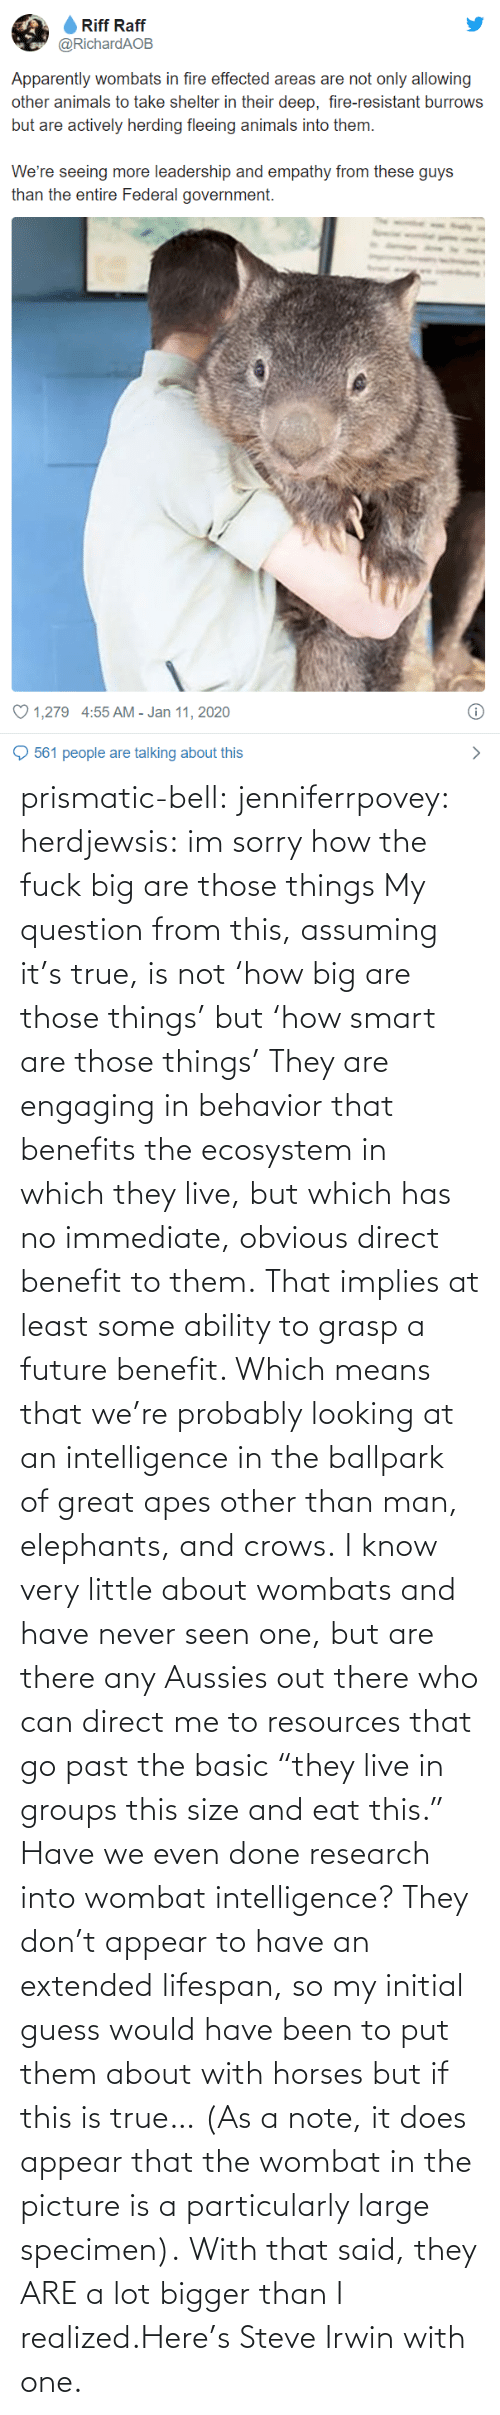 "Has No: prismatic-bell:  jenniferrpovey: herdjewsis: im sorry how the fuck big are those things My question from this, assuming it's true, is not 'how big are those things' but 'how smart are those things' They are engaging in behavior that benefits the ecosystem in which they live, but which has no immediate, obvious direct benefit to them. That implies at least some ability to grasp a future benefit. Which means that we're probably looking at an intelligence in the ballpark of great apes other than man, elephants, and crows. I know very little about wombats and have never seen one, but are there any Aussies out there who can direct me to resources that go past the basic ""they live in groups this size and eat this."" Have we even done research into wombat intelligence? They don't appear to have an extended lifespan, so my initial guess would have been to put them about with horses but if this is true… (As a note, it does appear that the wombat in the picture is a particularly large specimen).  With that said, they ARE a lot bigger than I realized.Here's Steve Irwin with one."